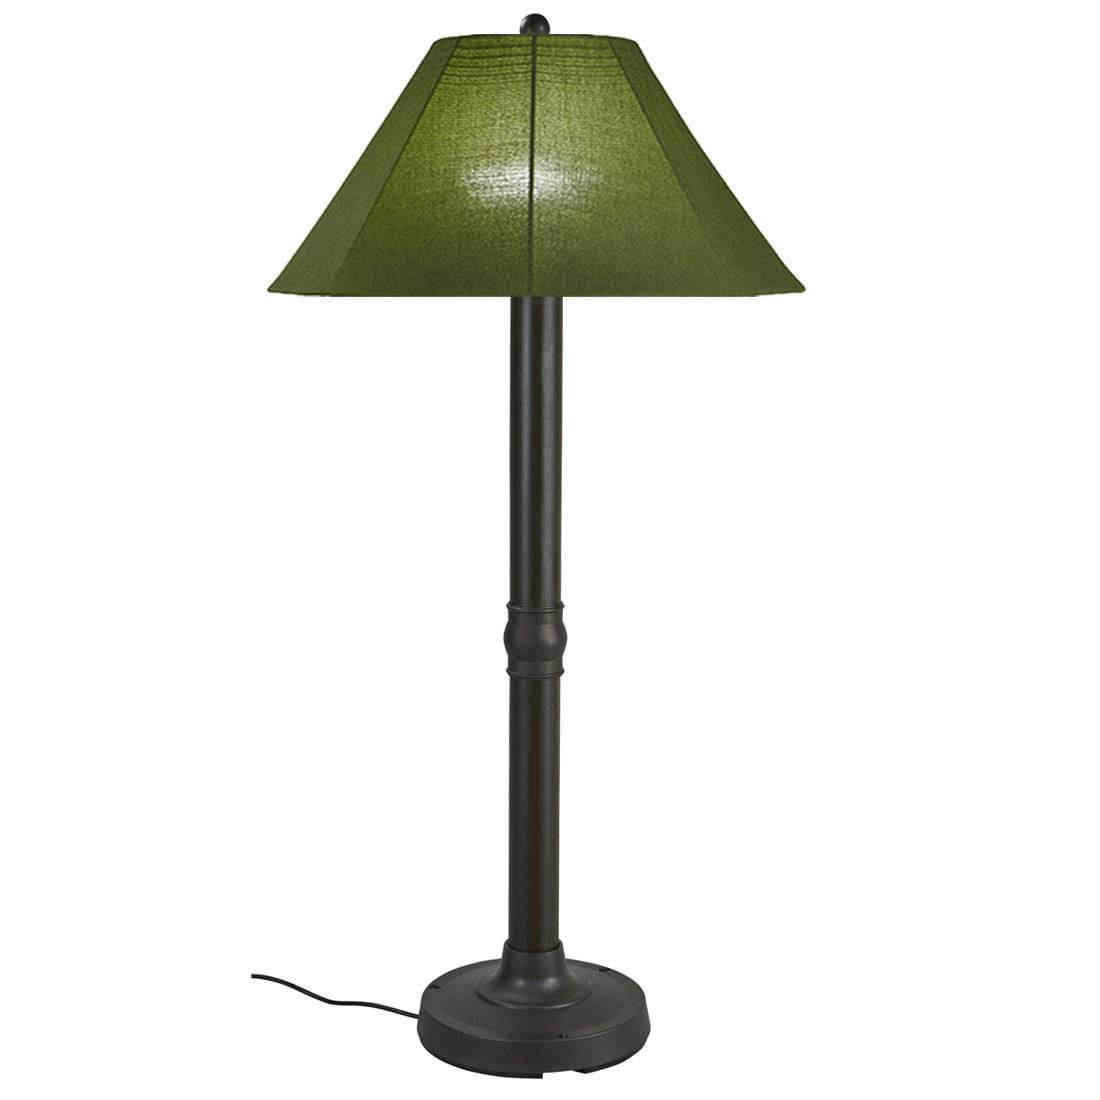 Catalina Ii Patio Floor Lamp 0068 Outdoor Weatherproof